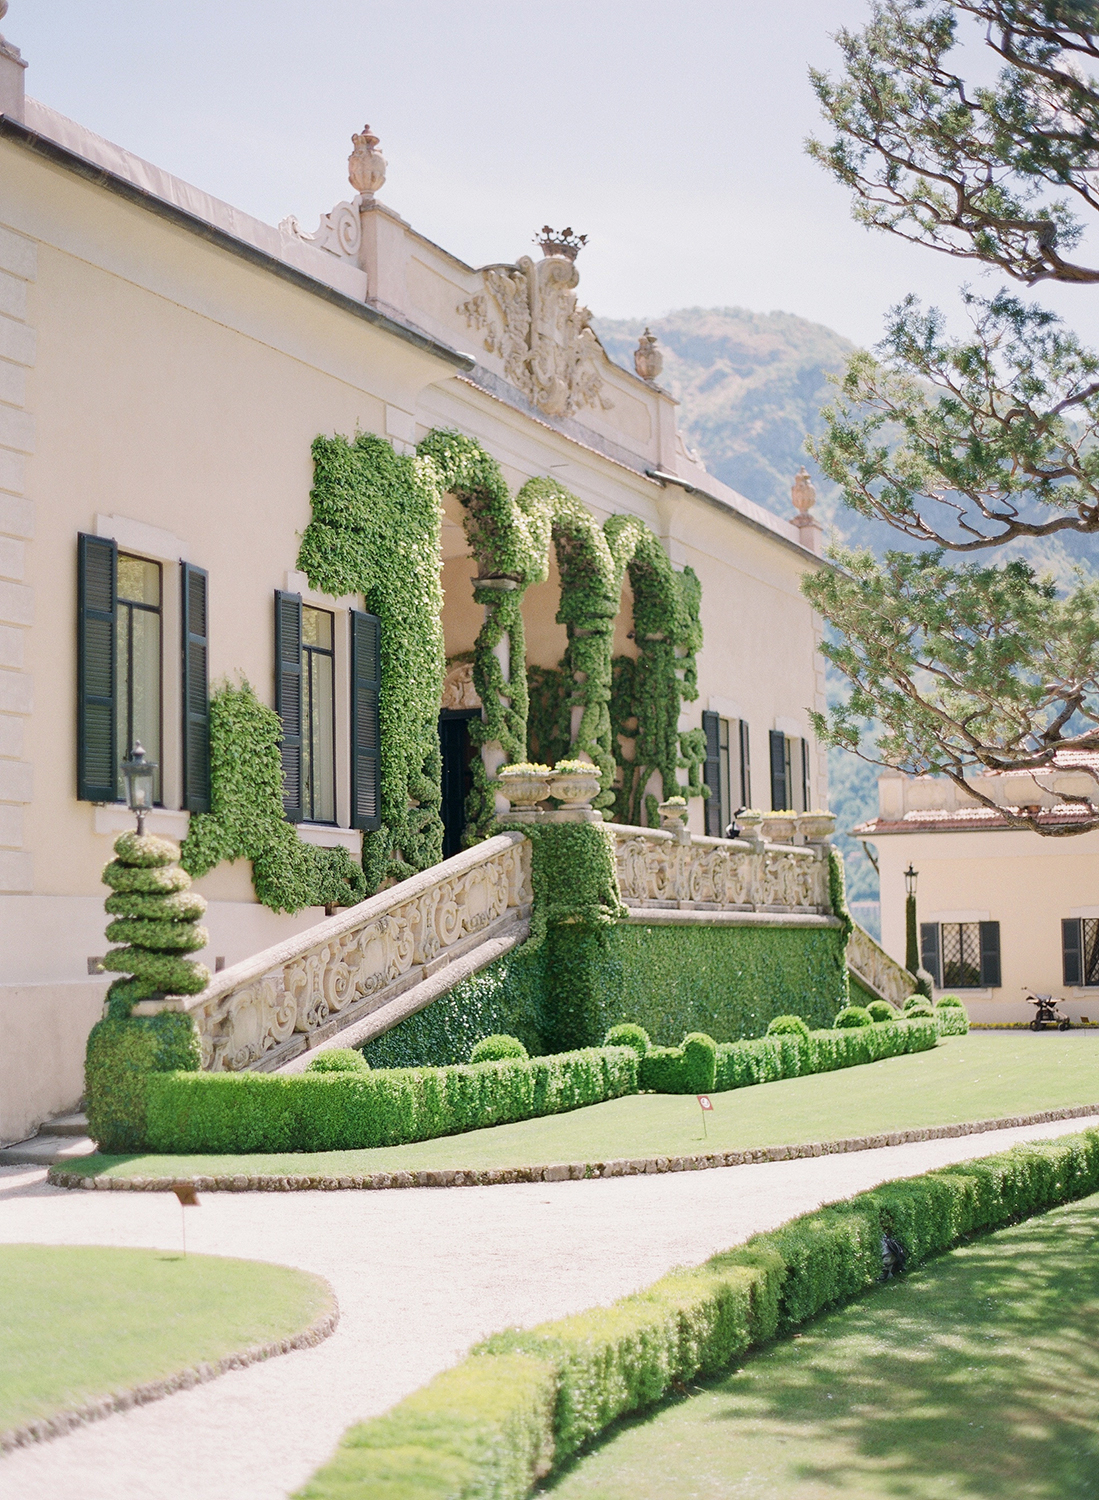 lake_como_wedding_photographer_villa_balbaniello_wedding_nikol_bodnarova_photography_03.jpg